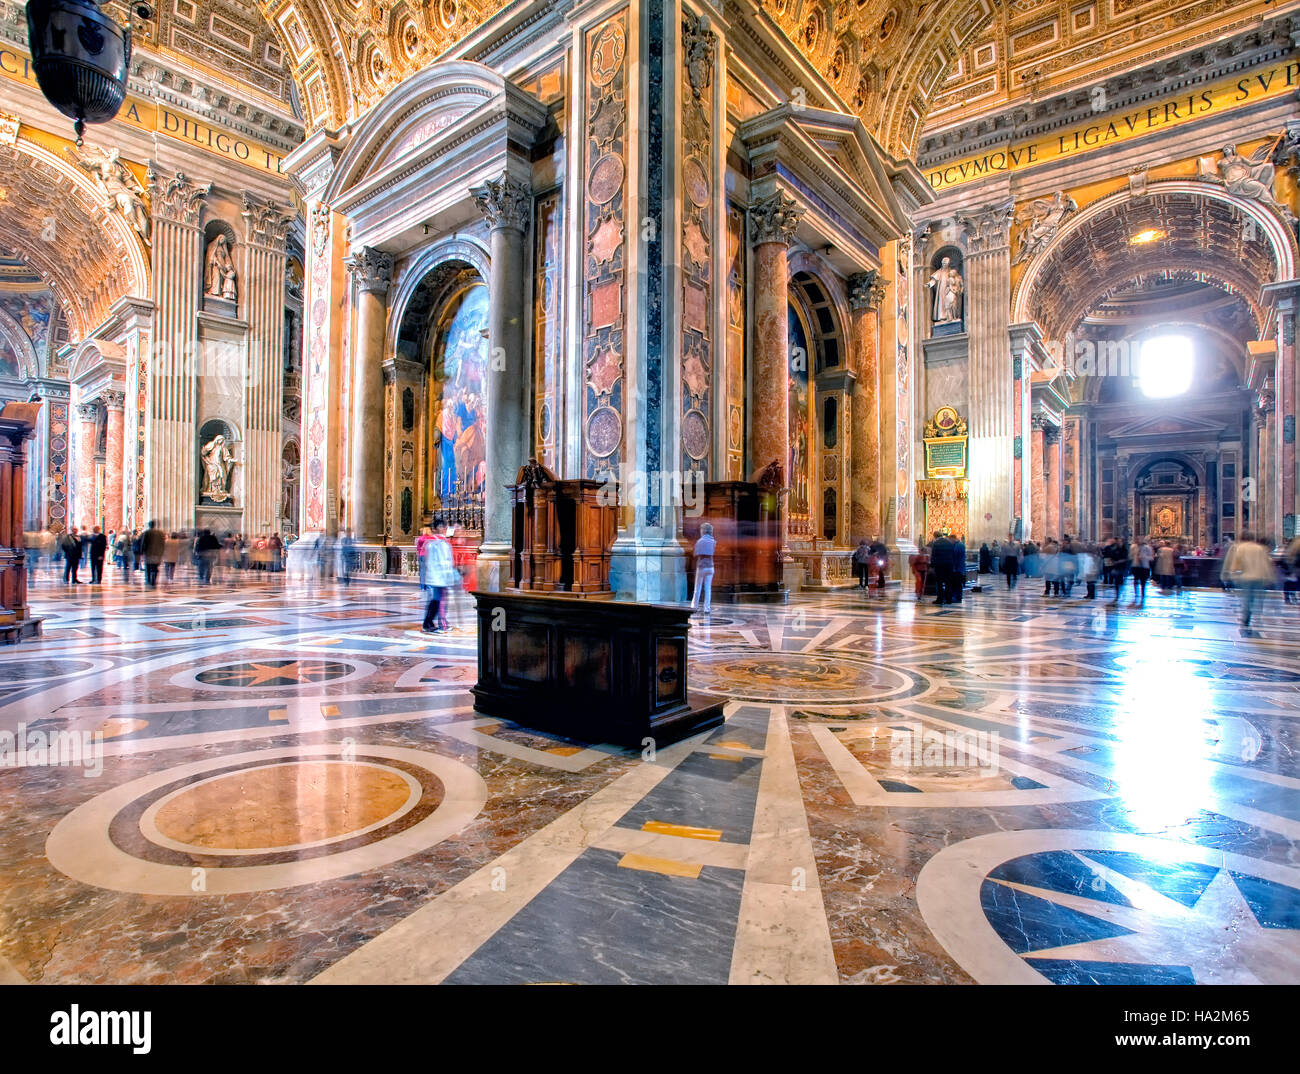 Interior of St Peter's Basilica in Rome, Italy - Stock Image